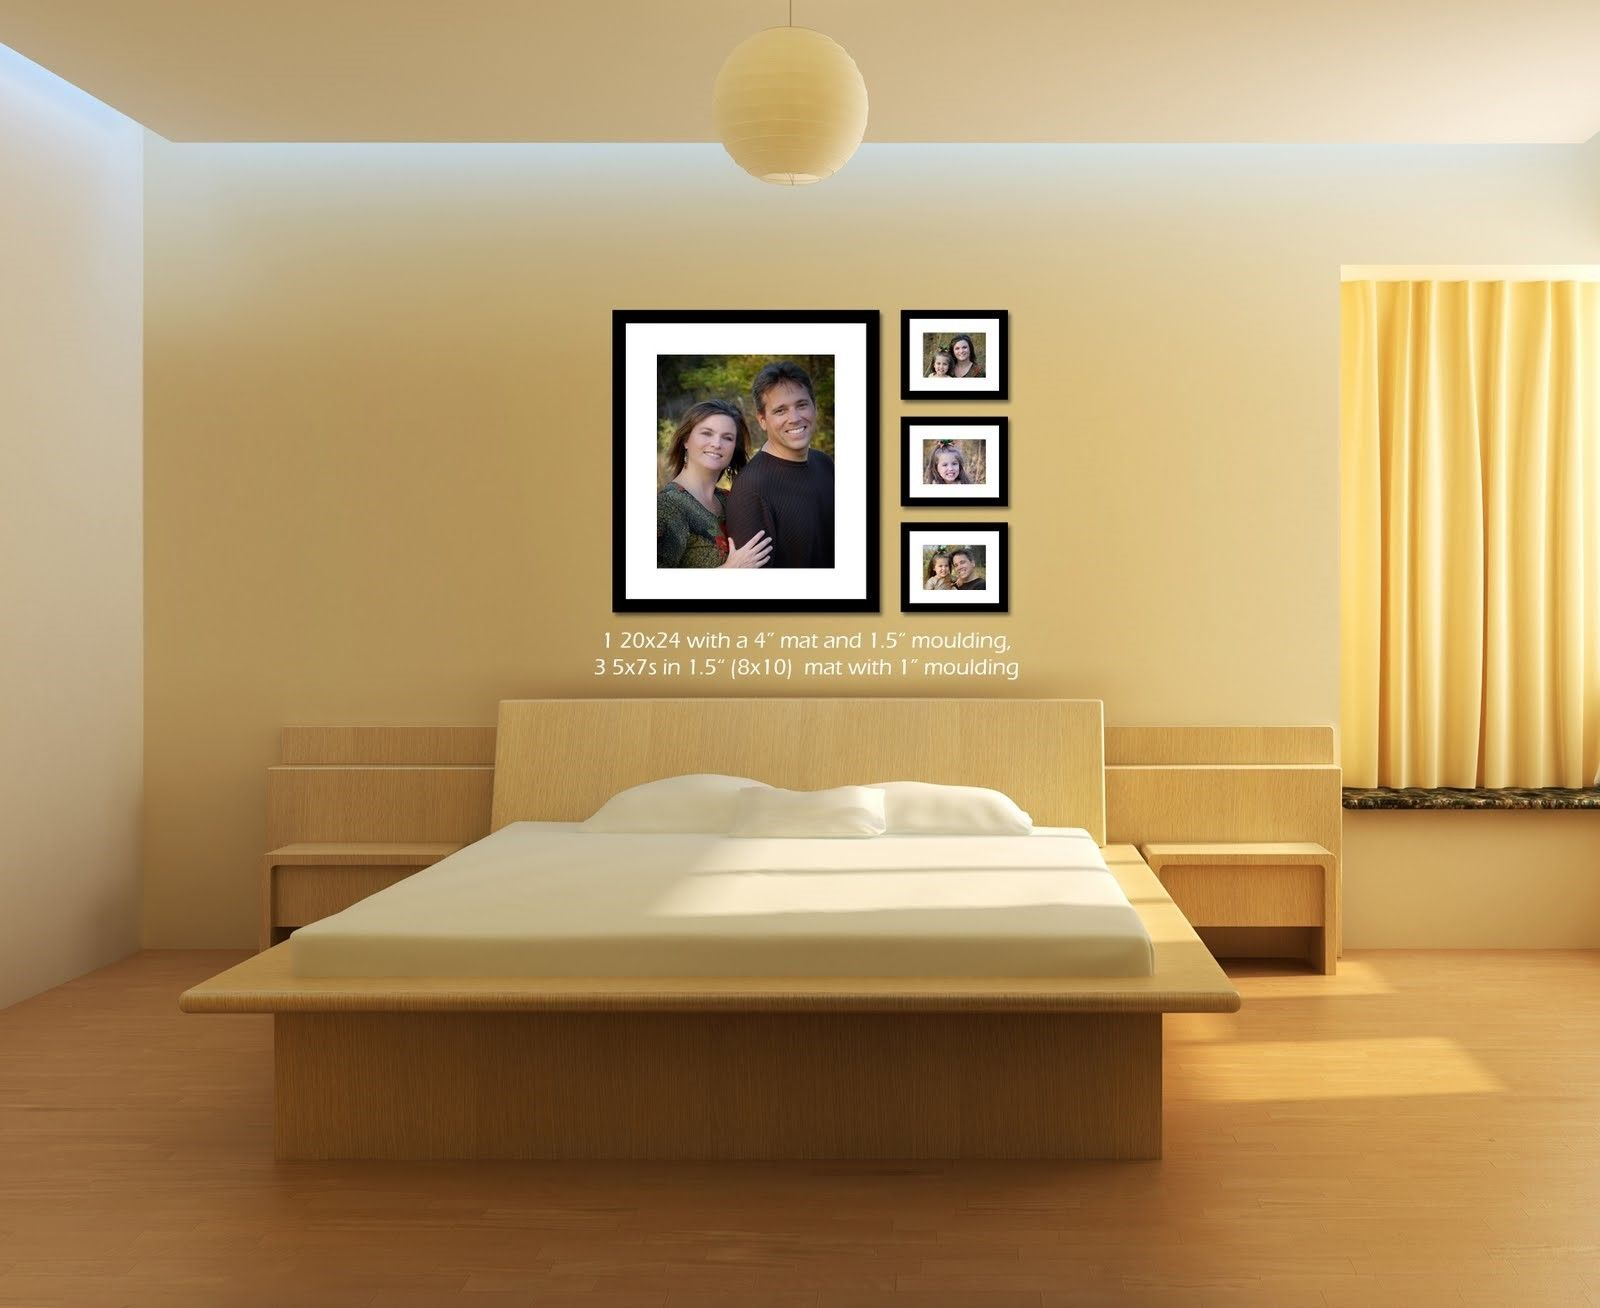 Bedroom Wall Ideas Pictures | http://umadepa.com | Pinterest